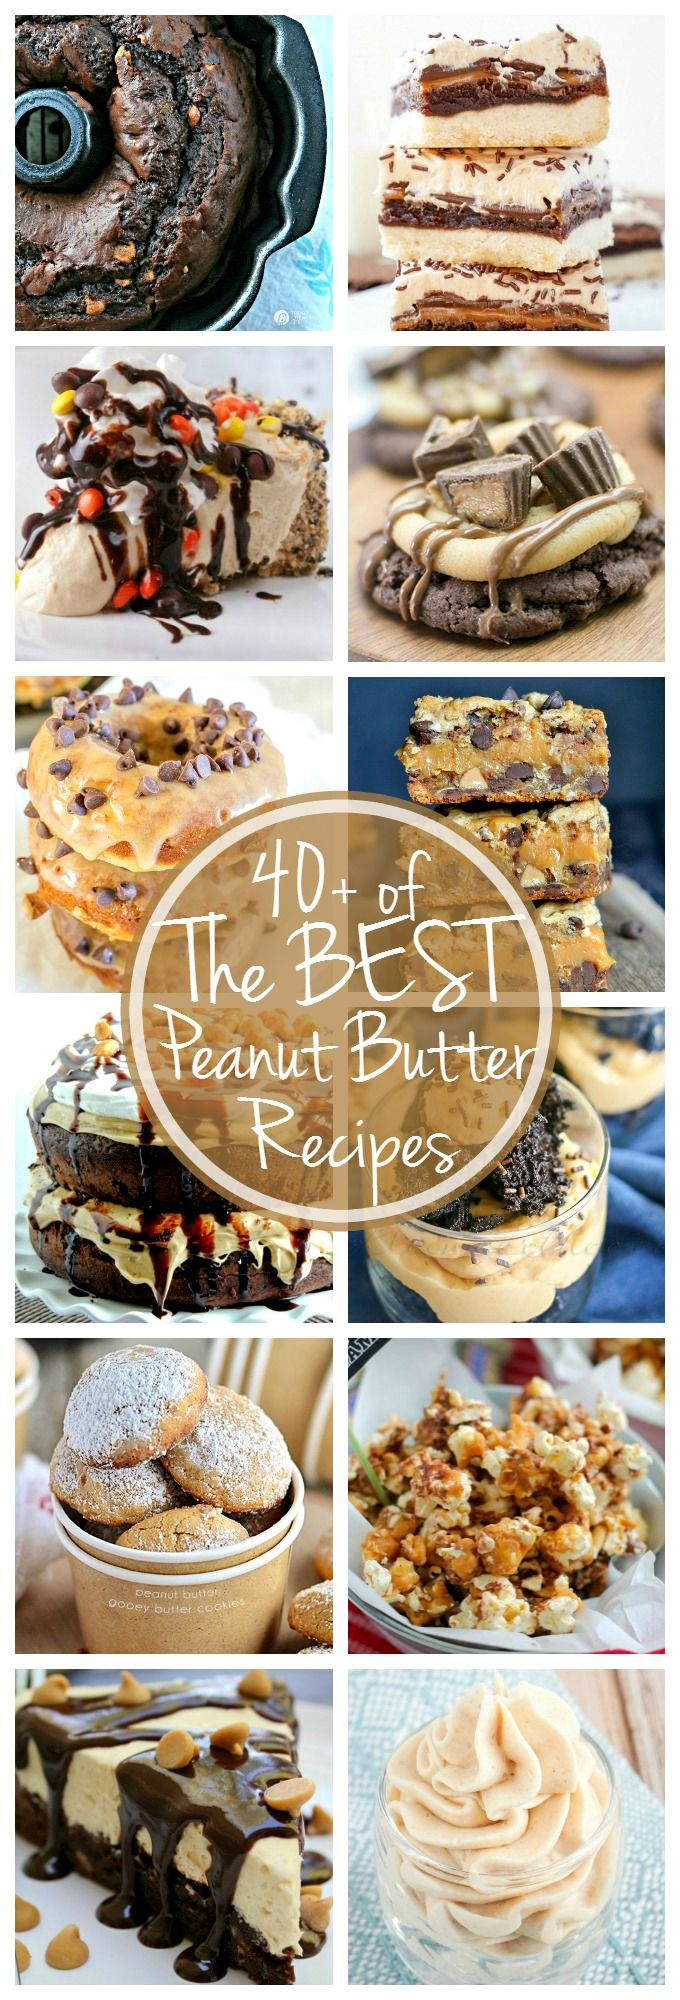 HAPPY NATIONAL PEANUT BUTTER LOVER'S DAY!!! Actually, I lied, it's tomorrow. BUT, if I didn't share this AMAZING list of Peanut Butter recipes with you today, how would you…